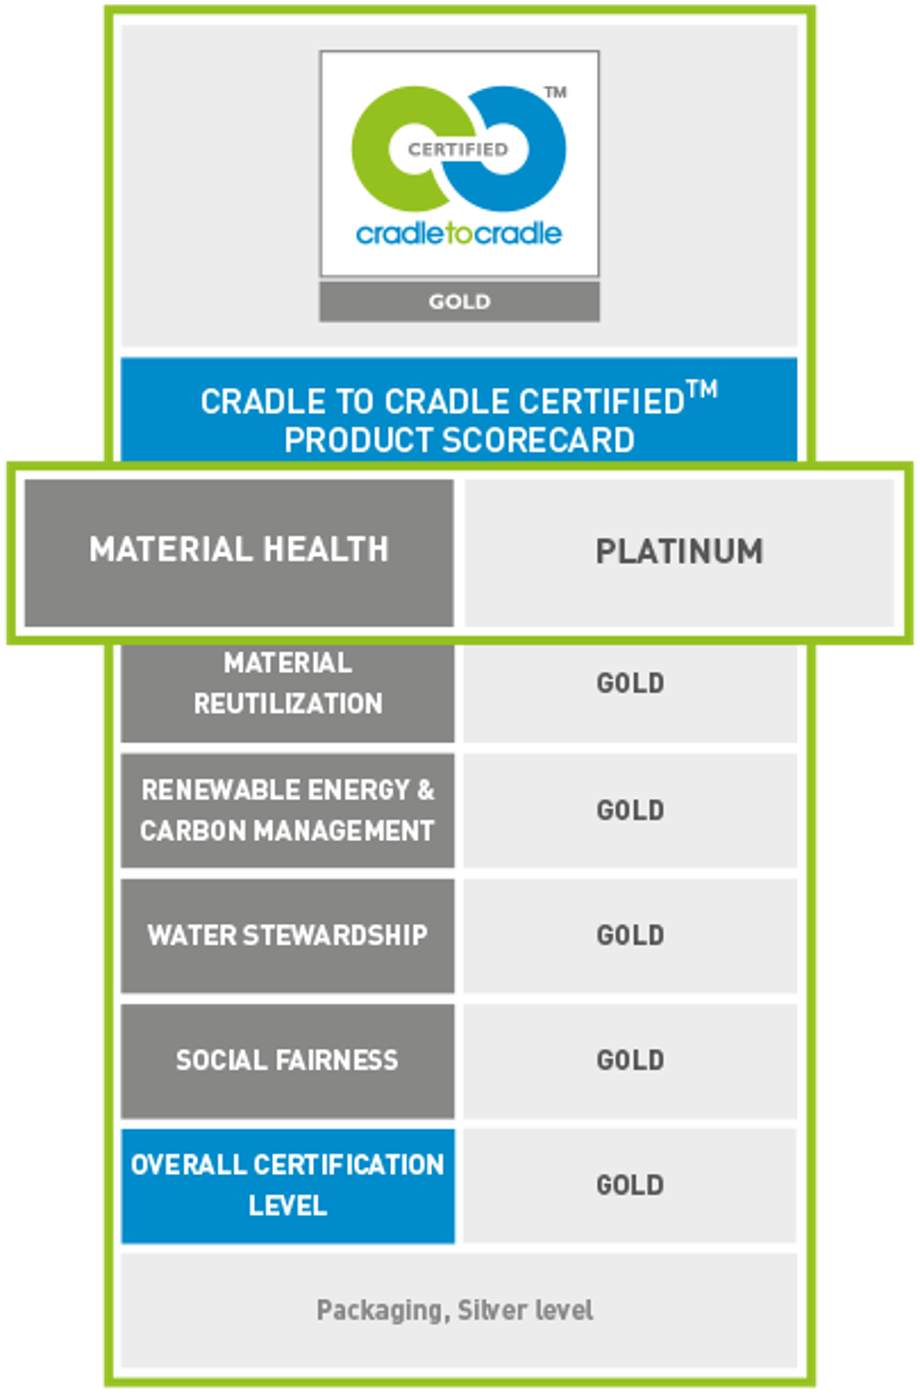 werner mertz professional green care score care cradle to cradle c2c material health platinum